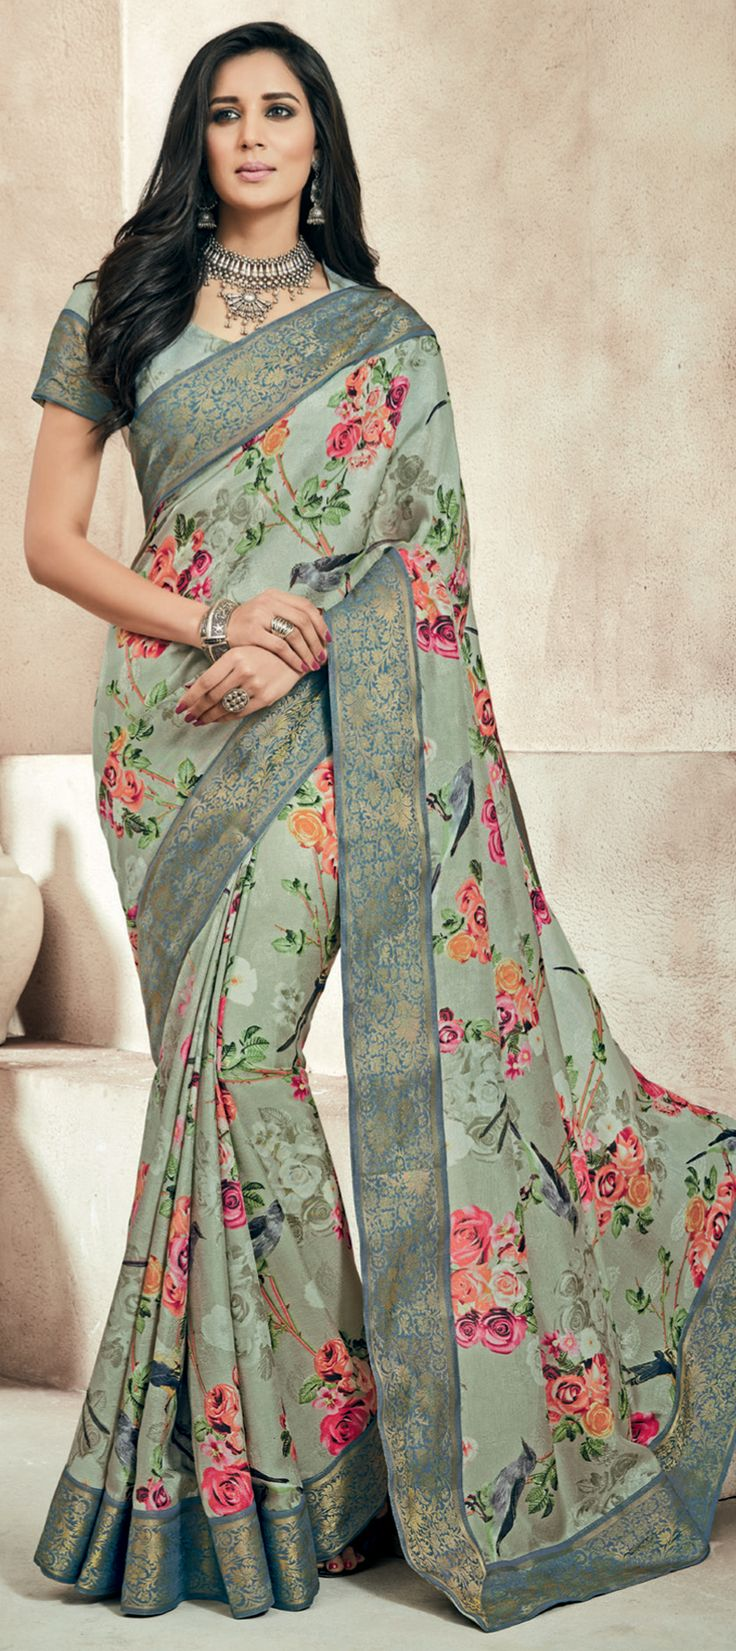 712020: Green color family Printed Sarees, Silk Sarees with matching unstitched blouse.